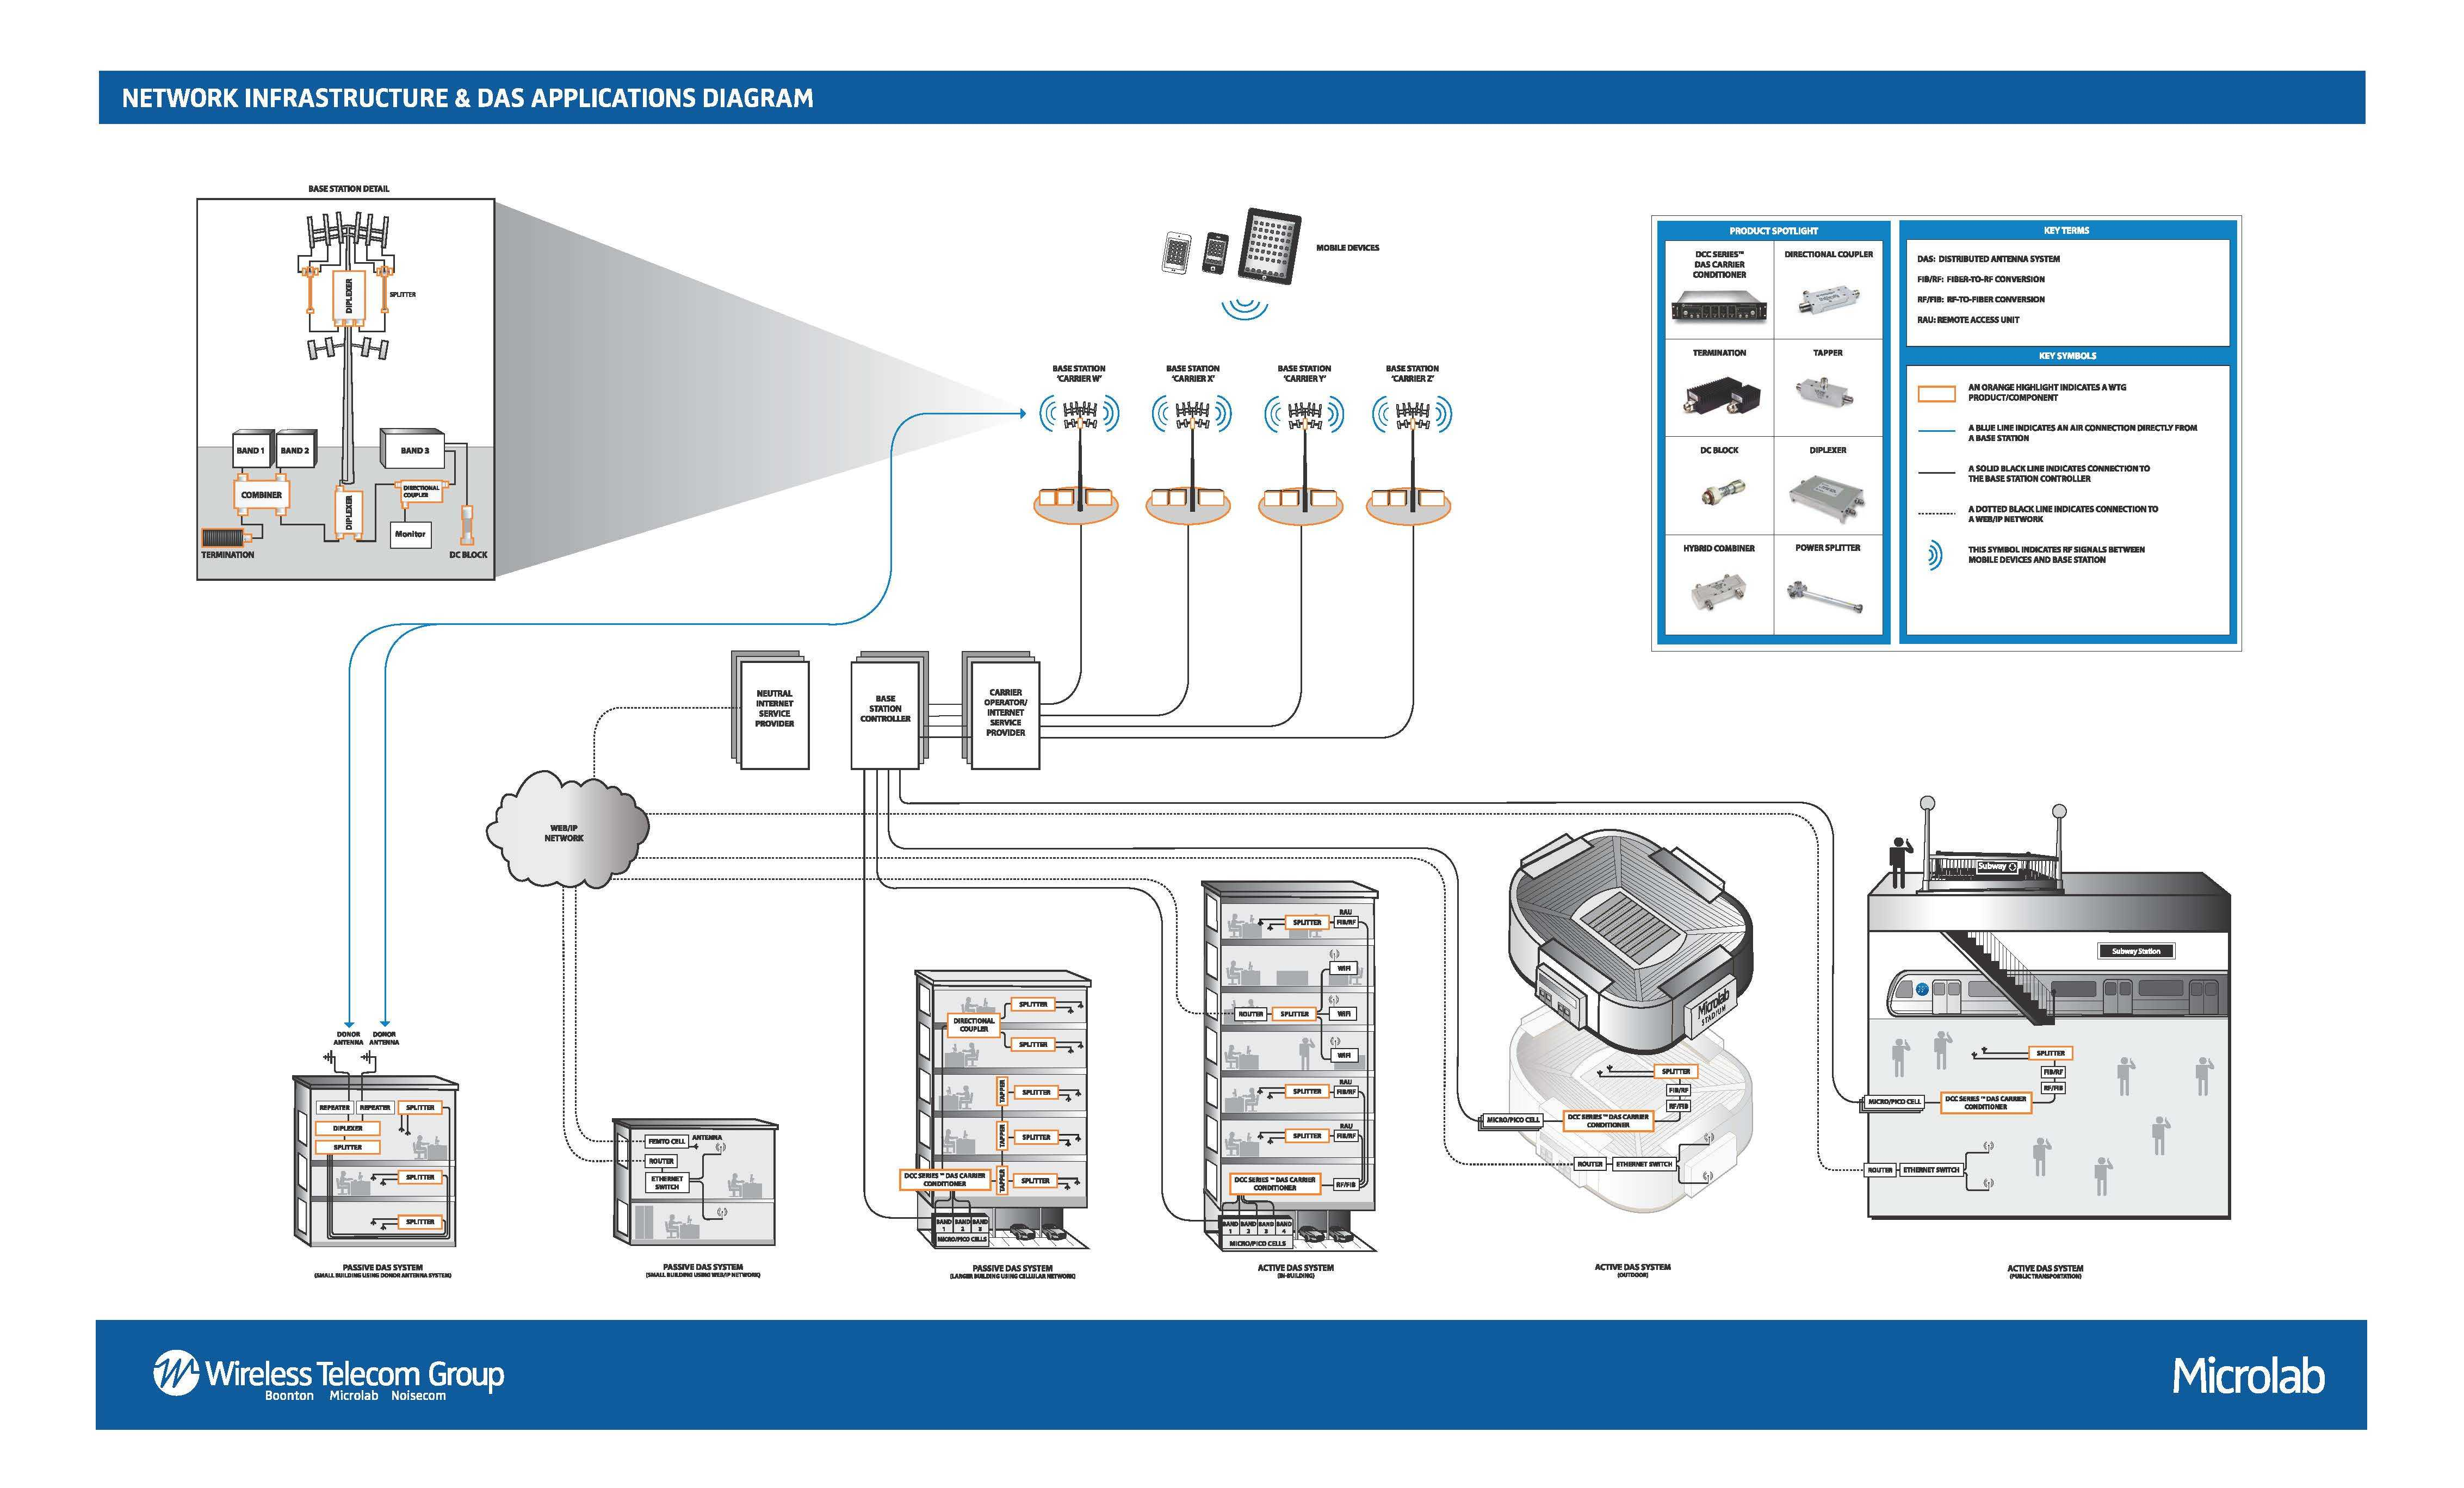 das-application-diagram.jpg#asset:124985